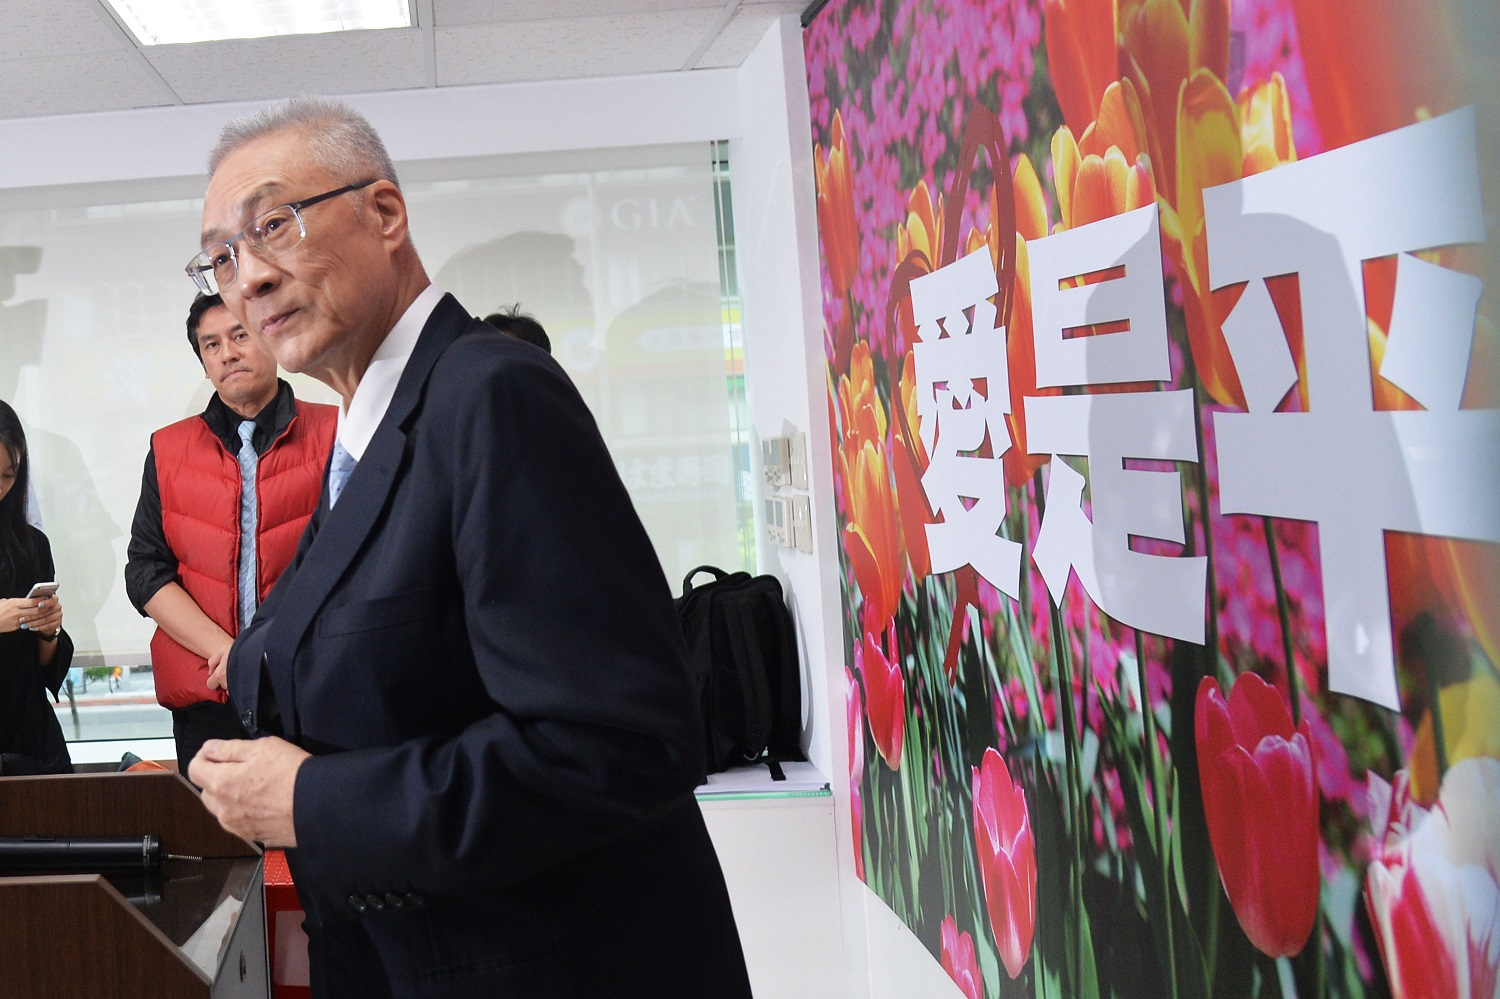 Chairman-elect of KMT shows support for same-sex marriage